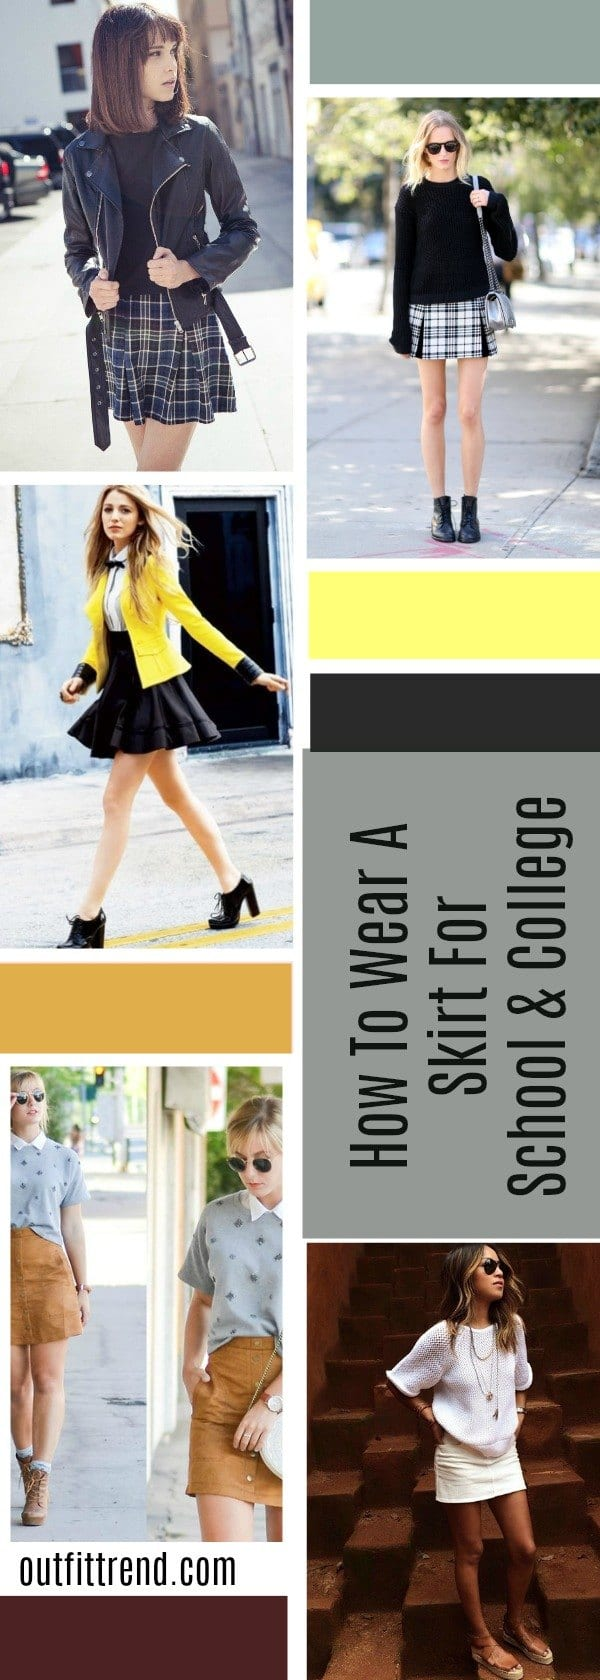 So-Moody Skirt Outfits for College- 35 Ideas To Wear Skirts To School